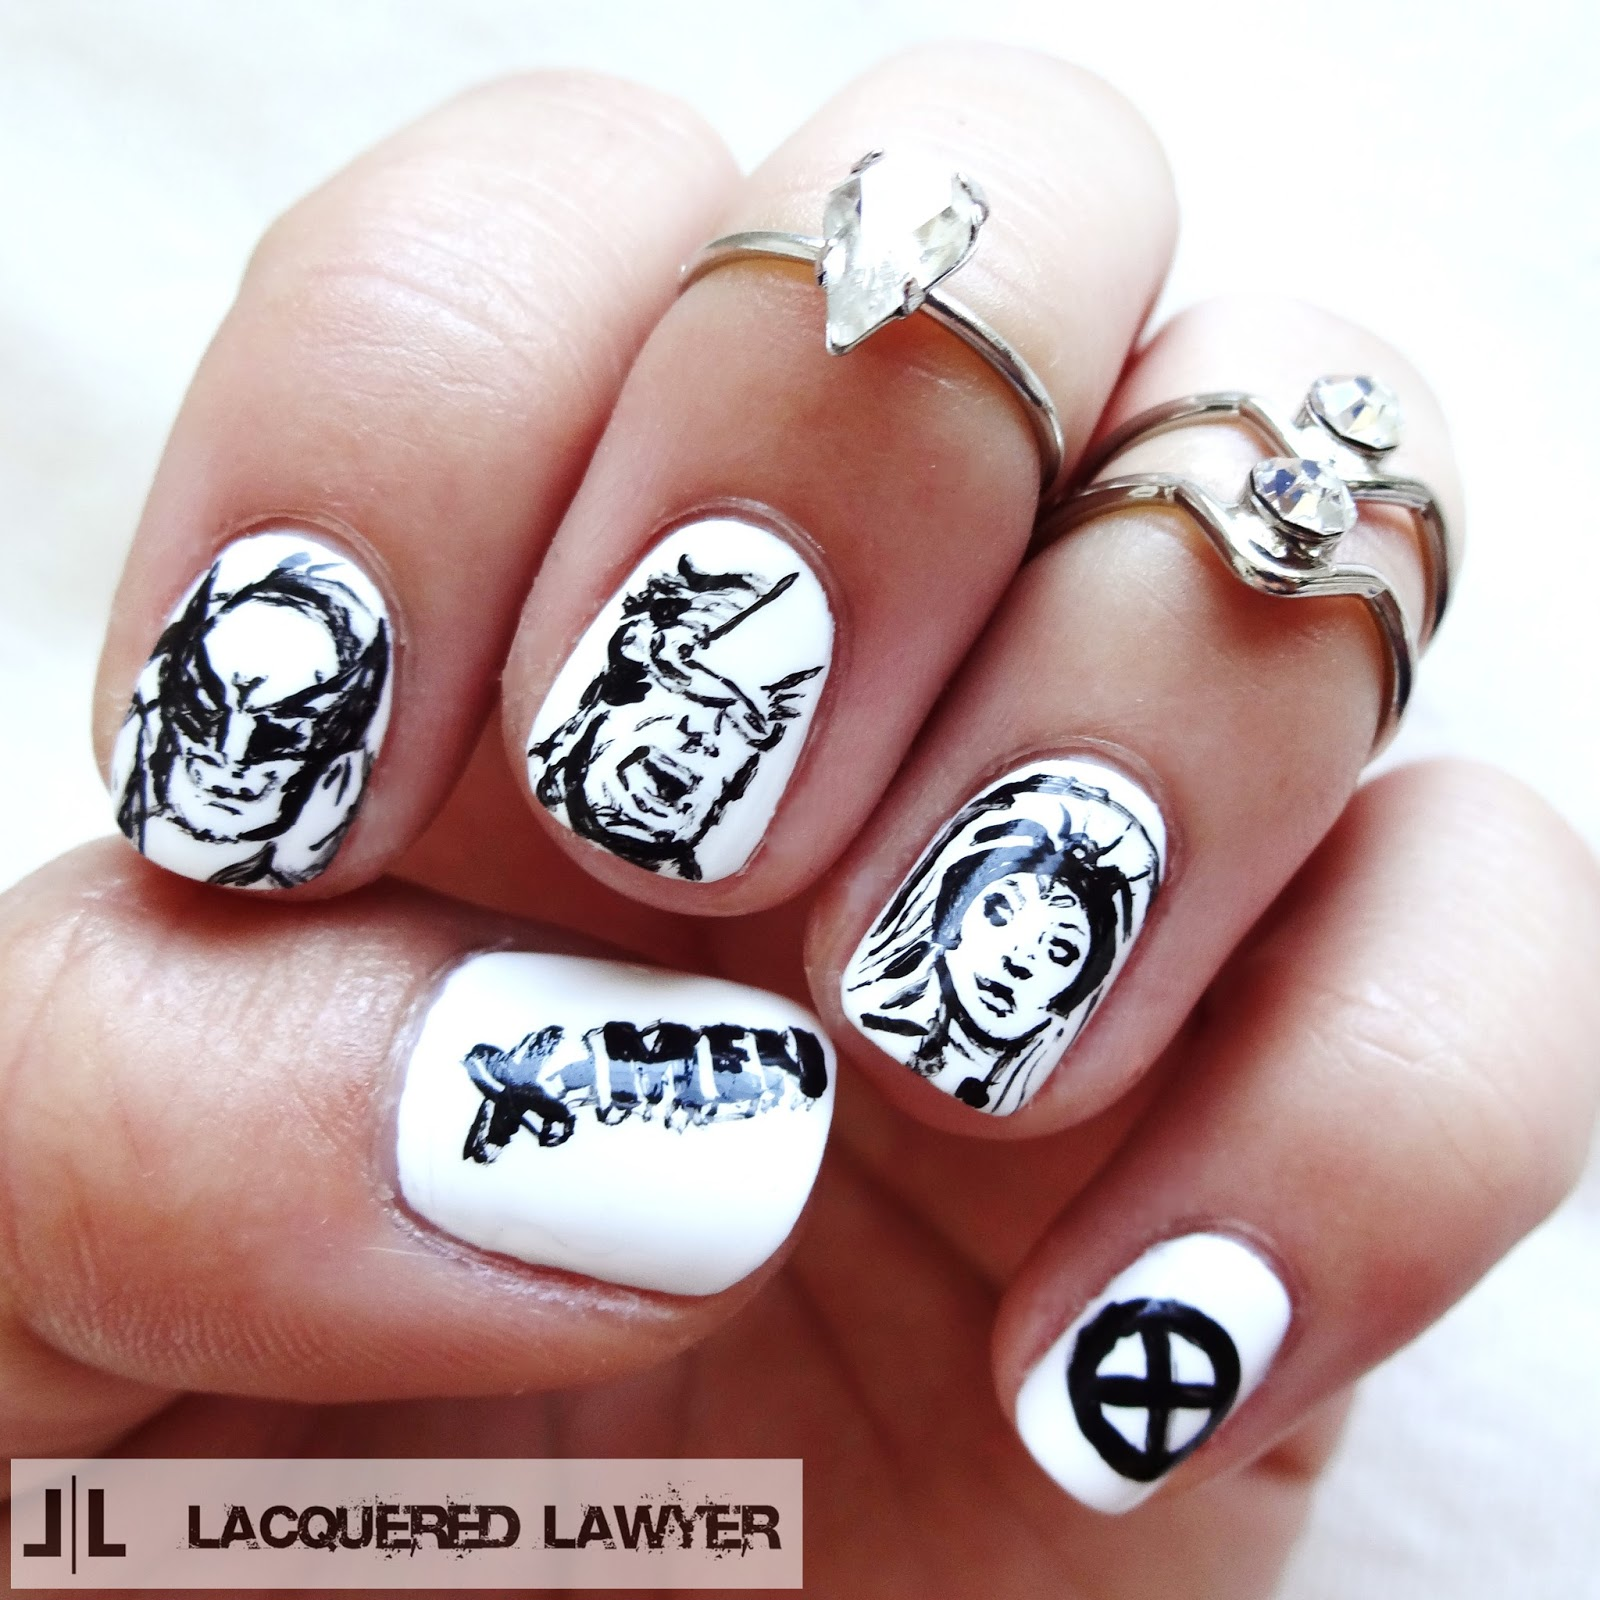 Lacquered Lawyer Nail Art Blog X Men